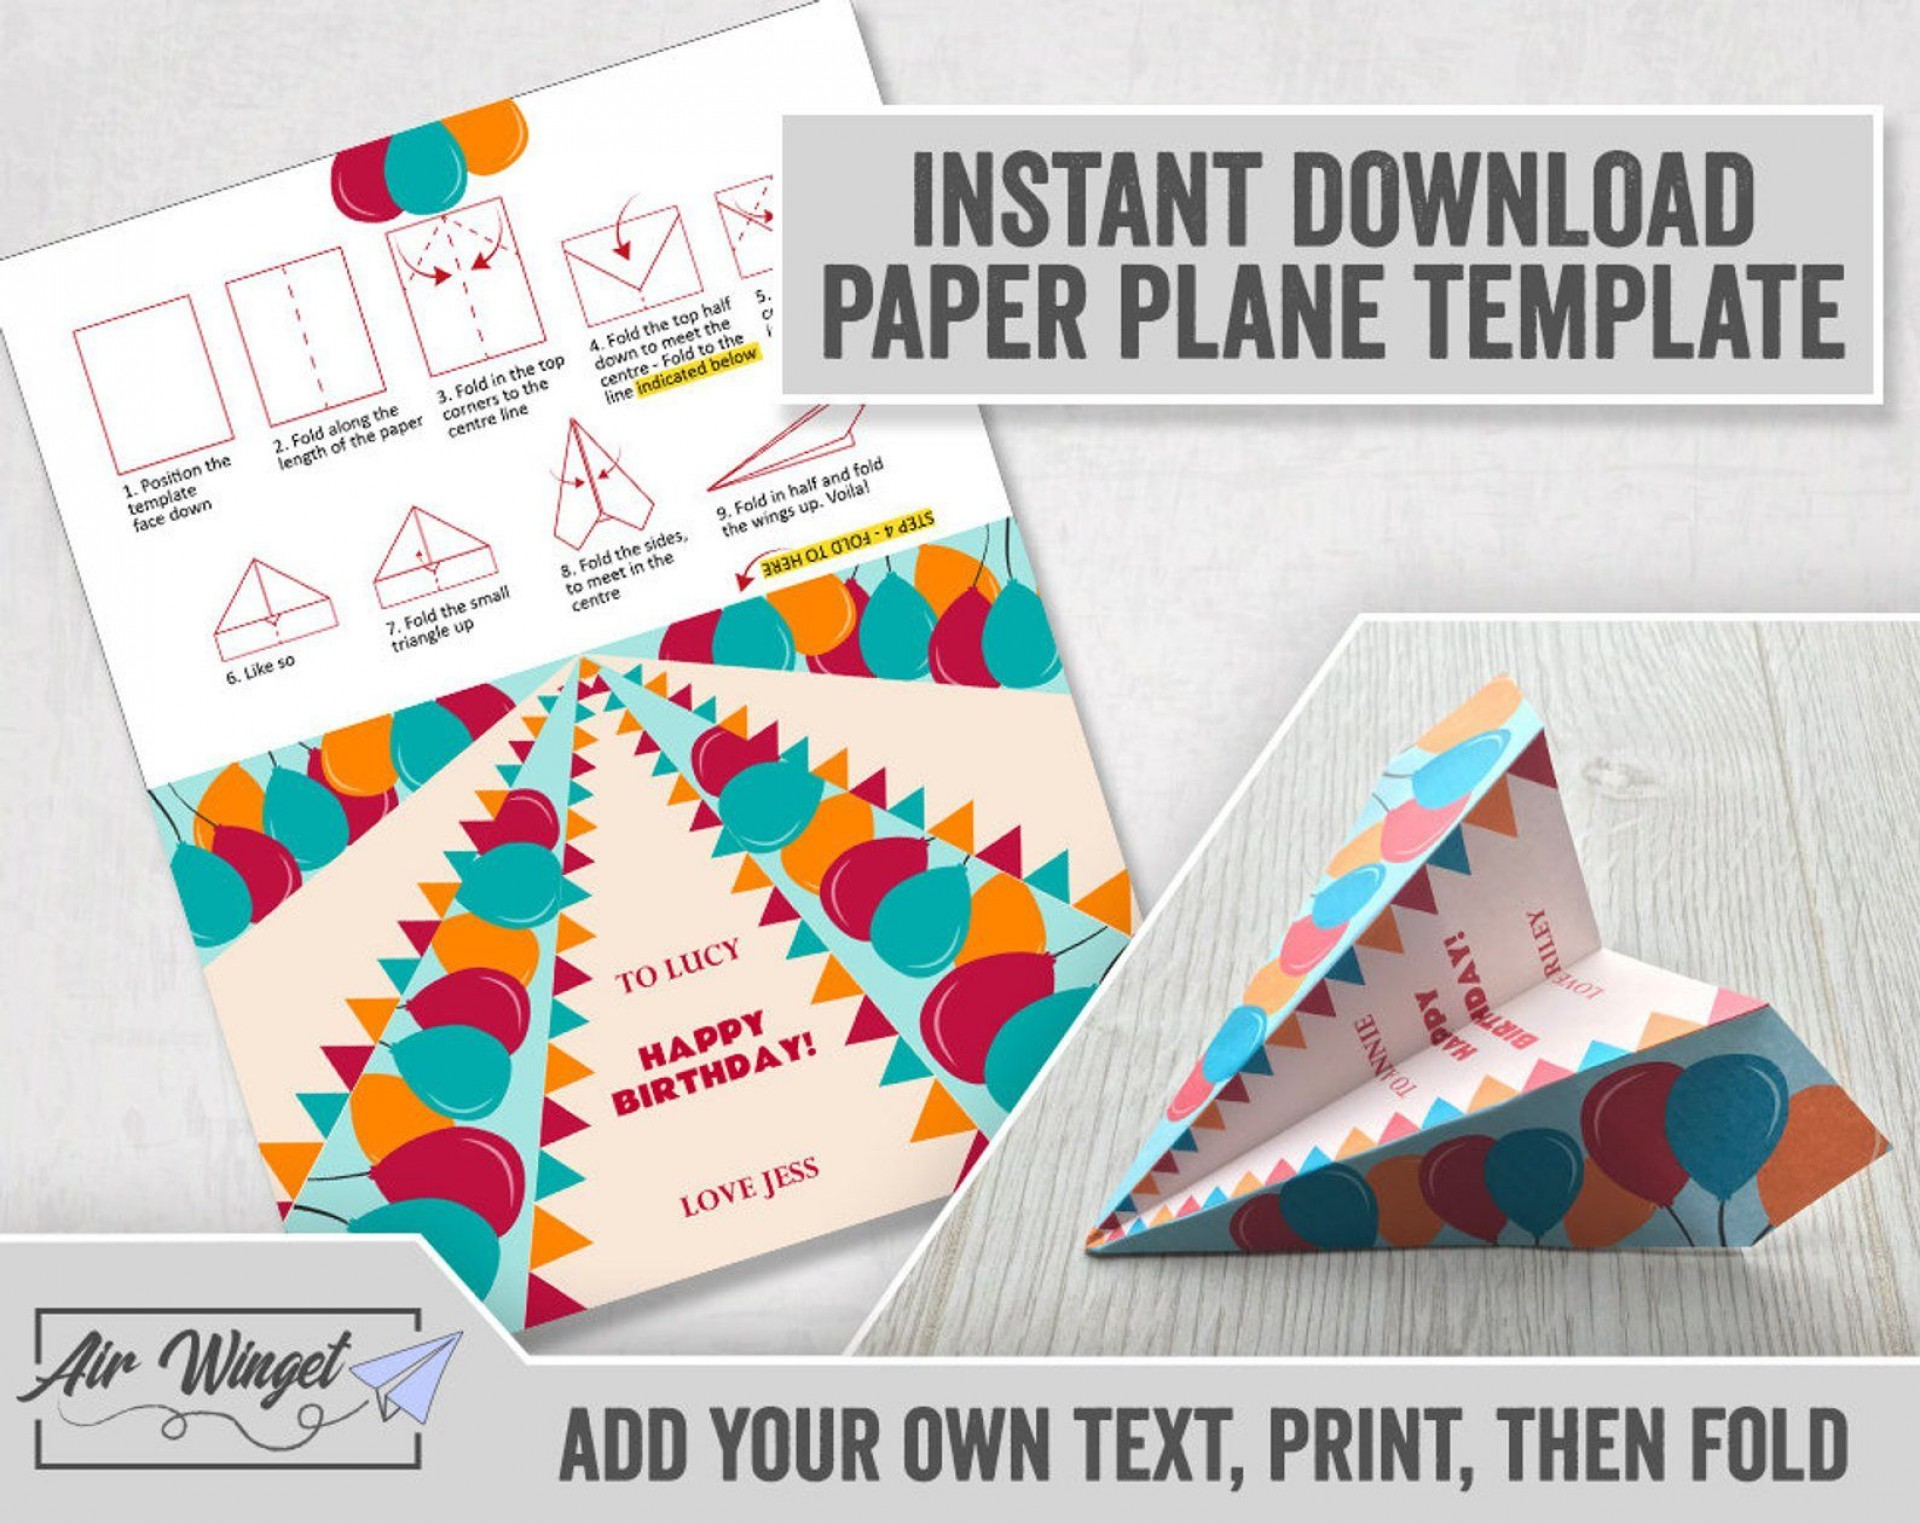 005 Unforgettable Printable Paper Plane Template Design  Templates Model Free Airplane Pattern1920